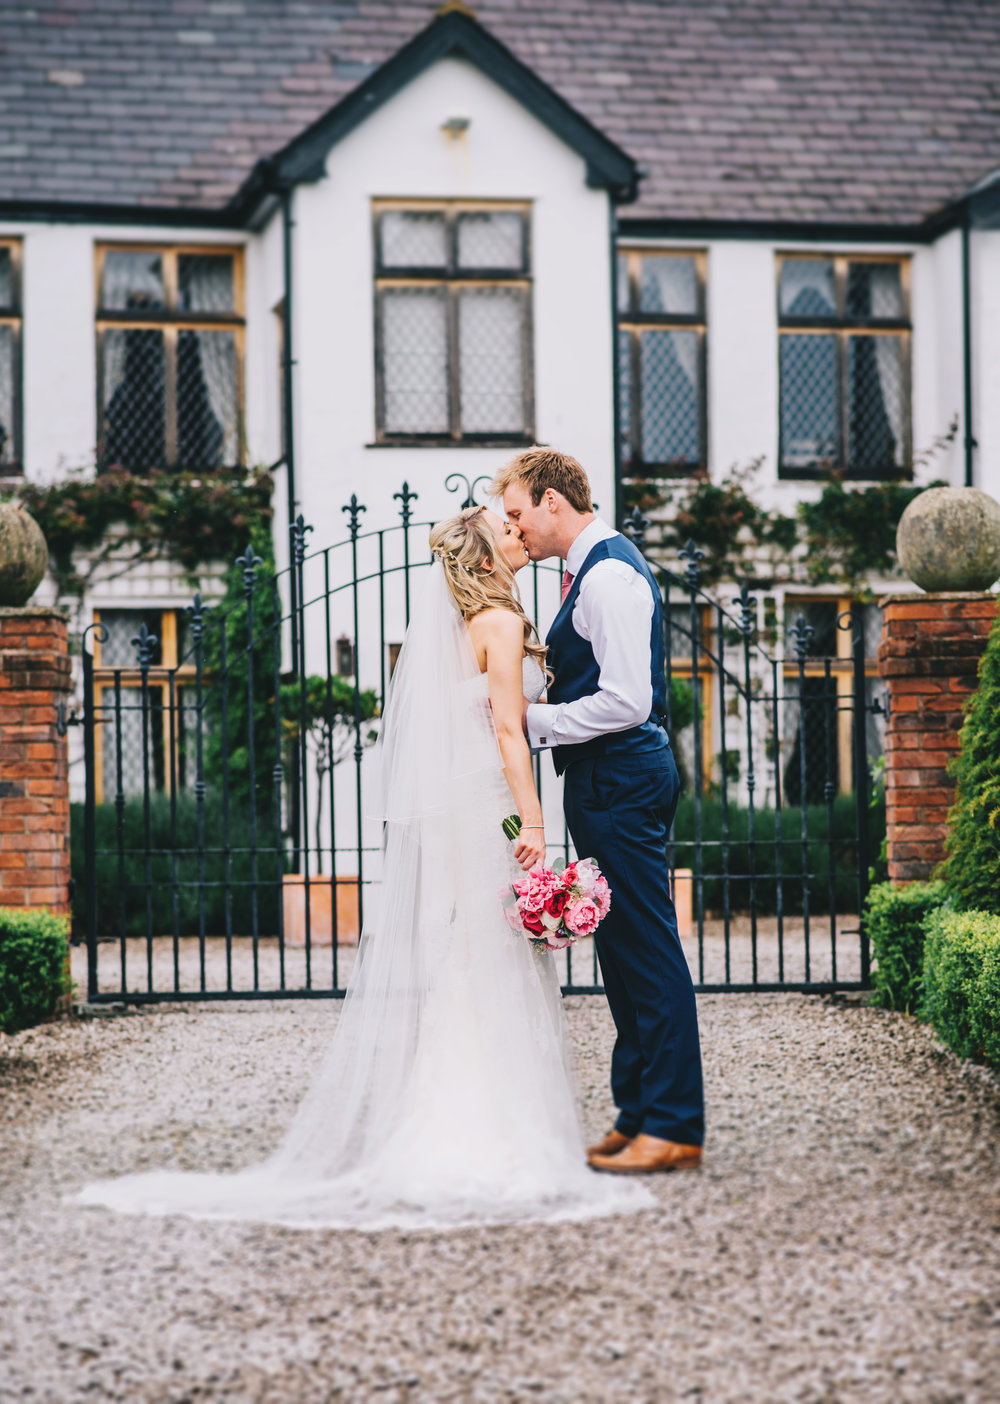 The bride and groom kissing at A Great Hall at Mains, Creative wedding photographer.